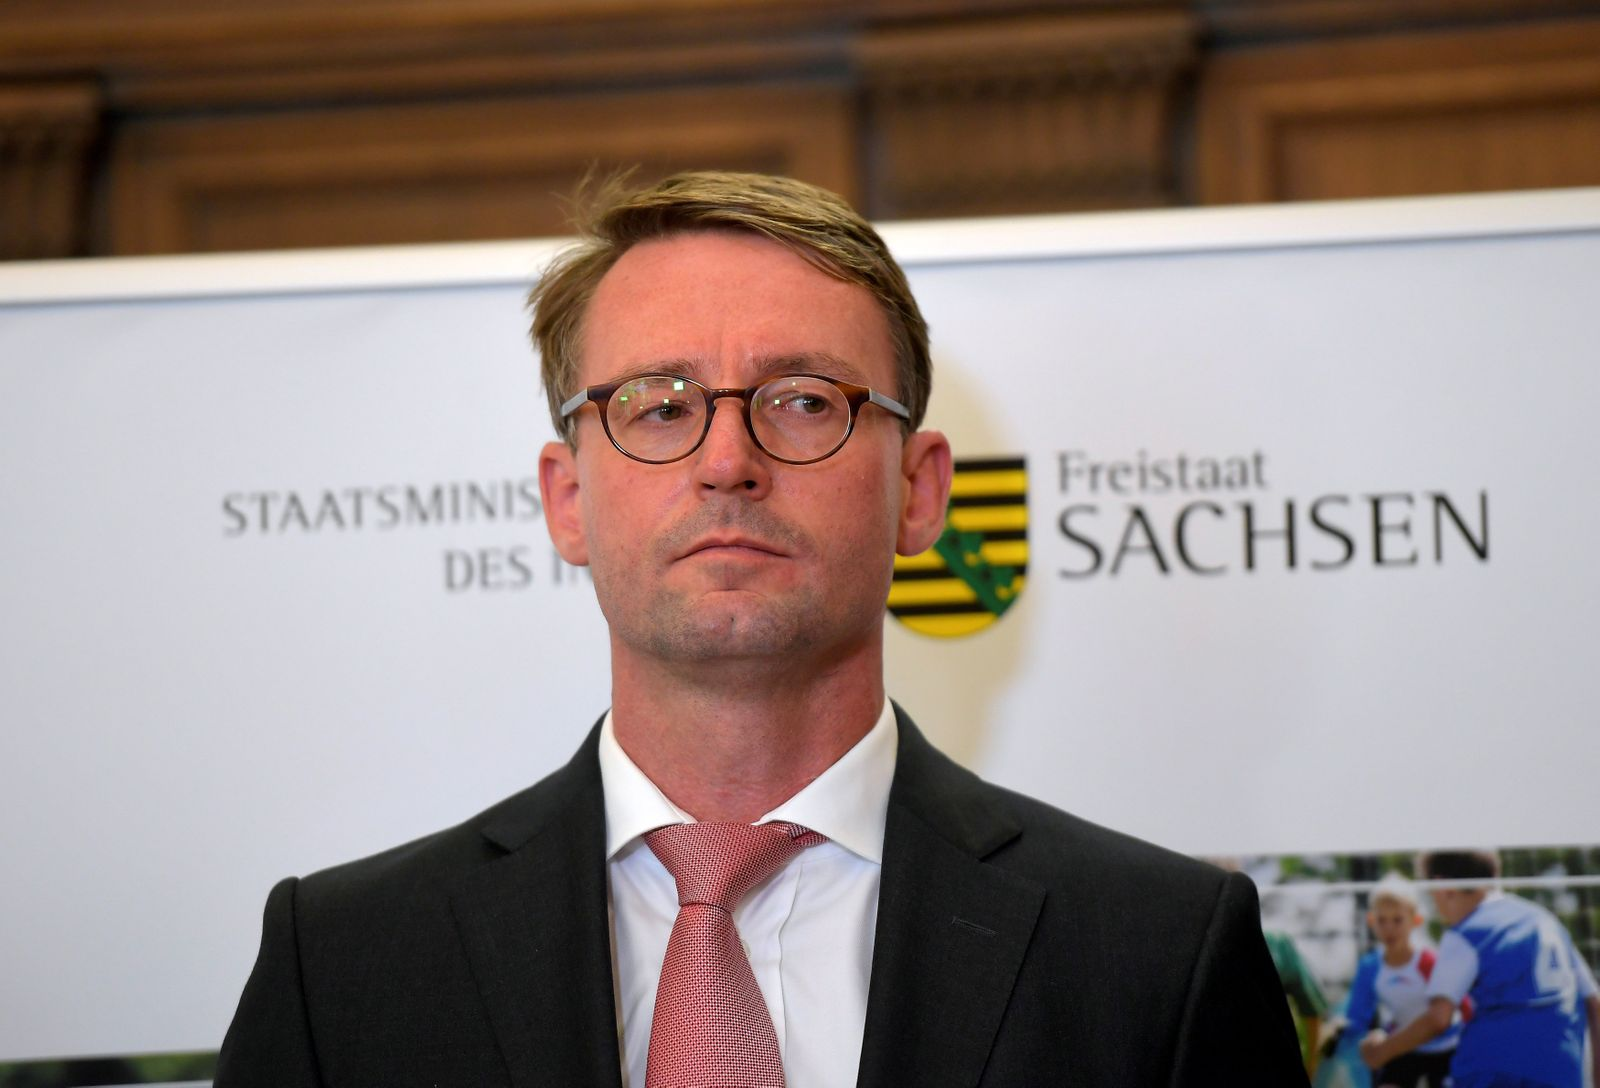 Saxony state Interior Minister Markus Ulbig looks on during a news conference in Chemnitz